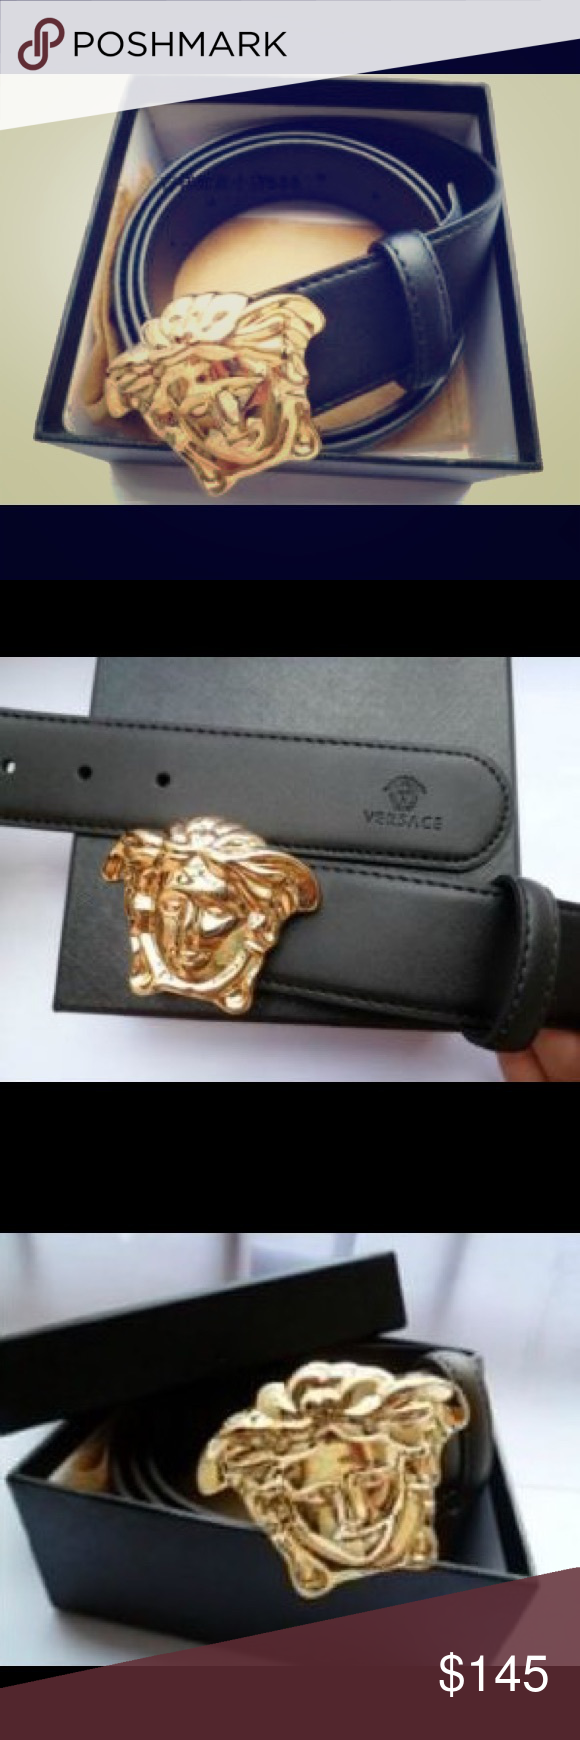 versace belt box. men\u0027s versace belt 🔥 brand new! black w/ gold medusa buckle. comes with box and dust bag. h